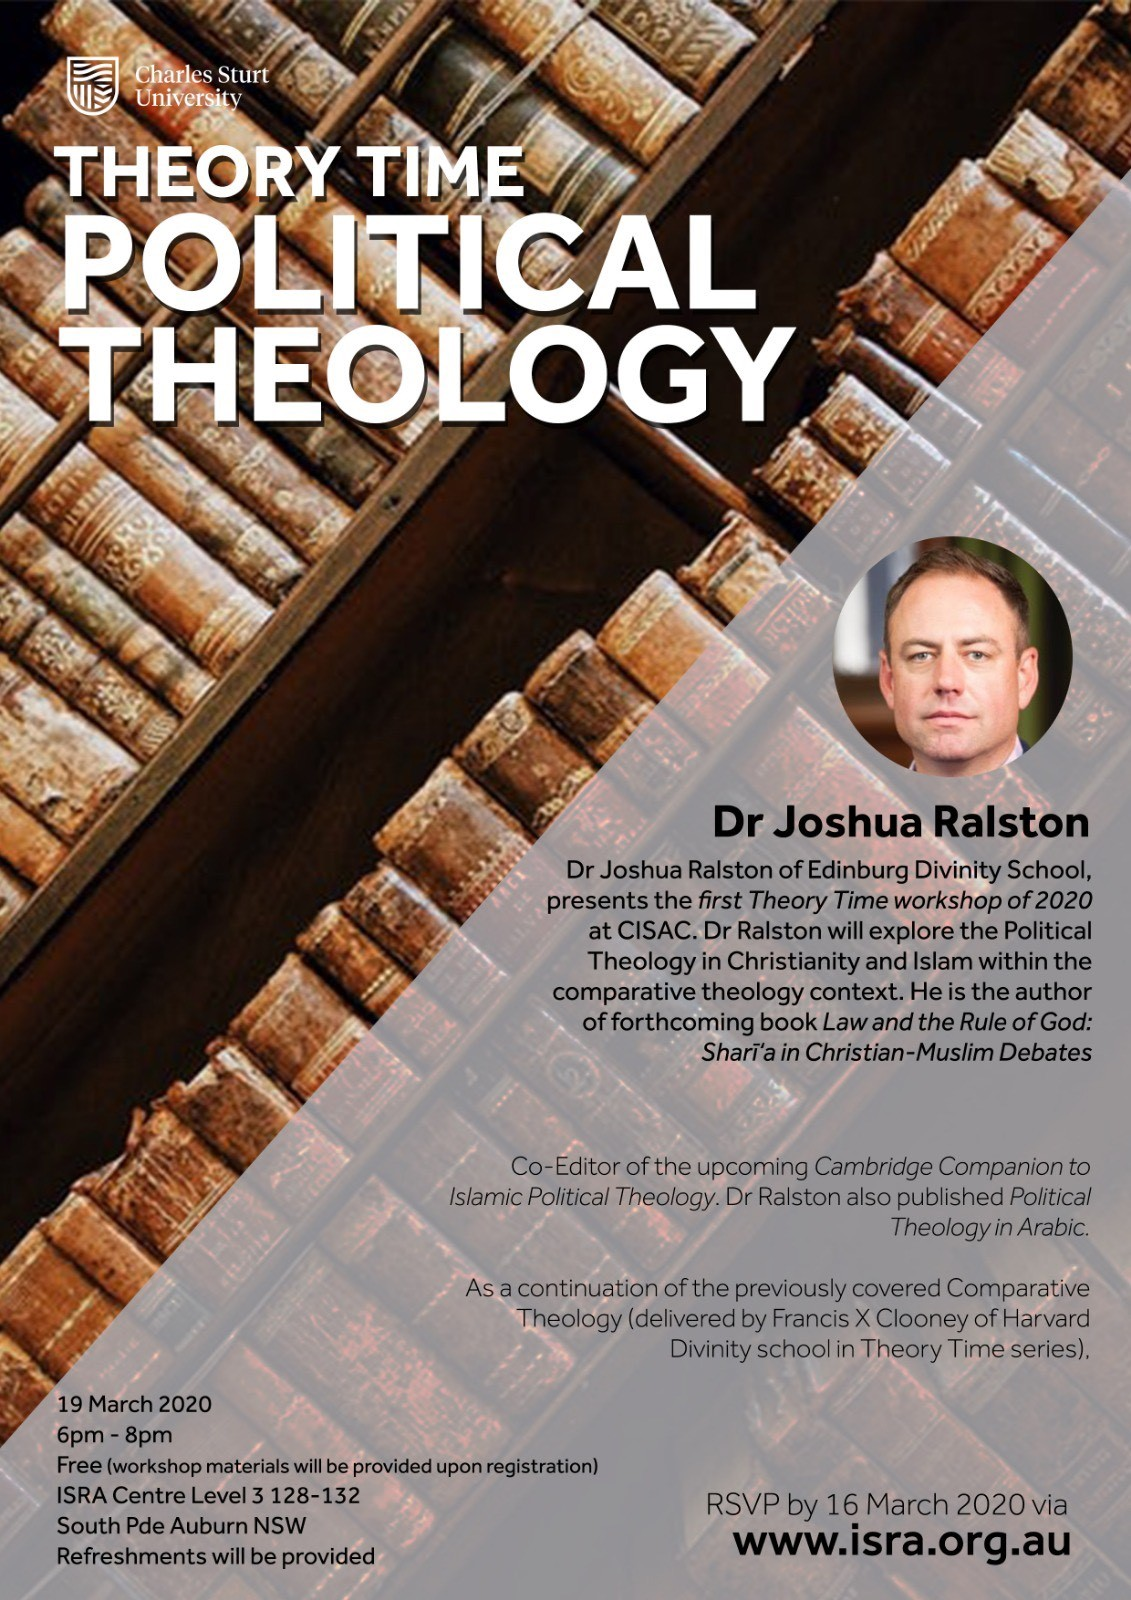 Theory Time Political Theology